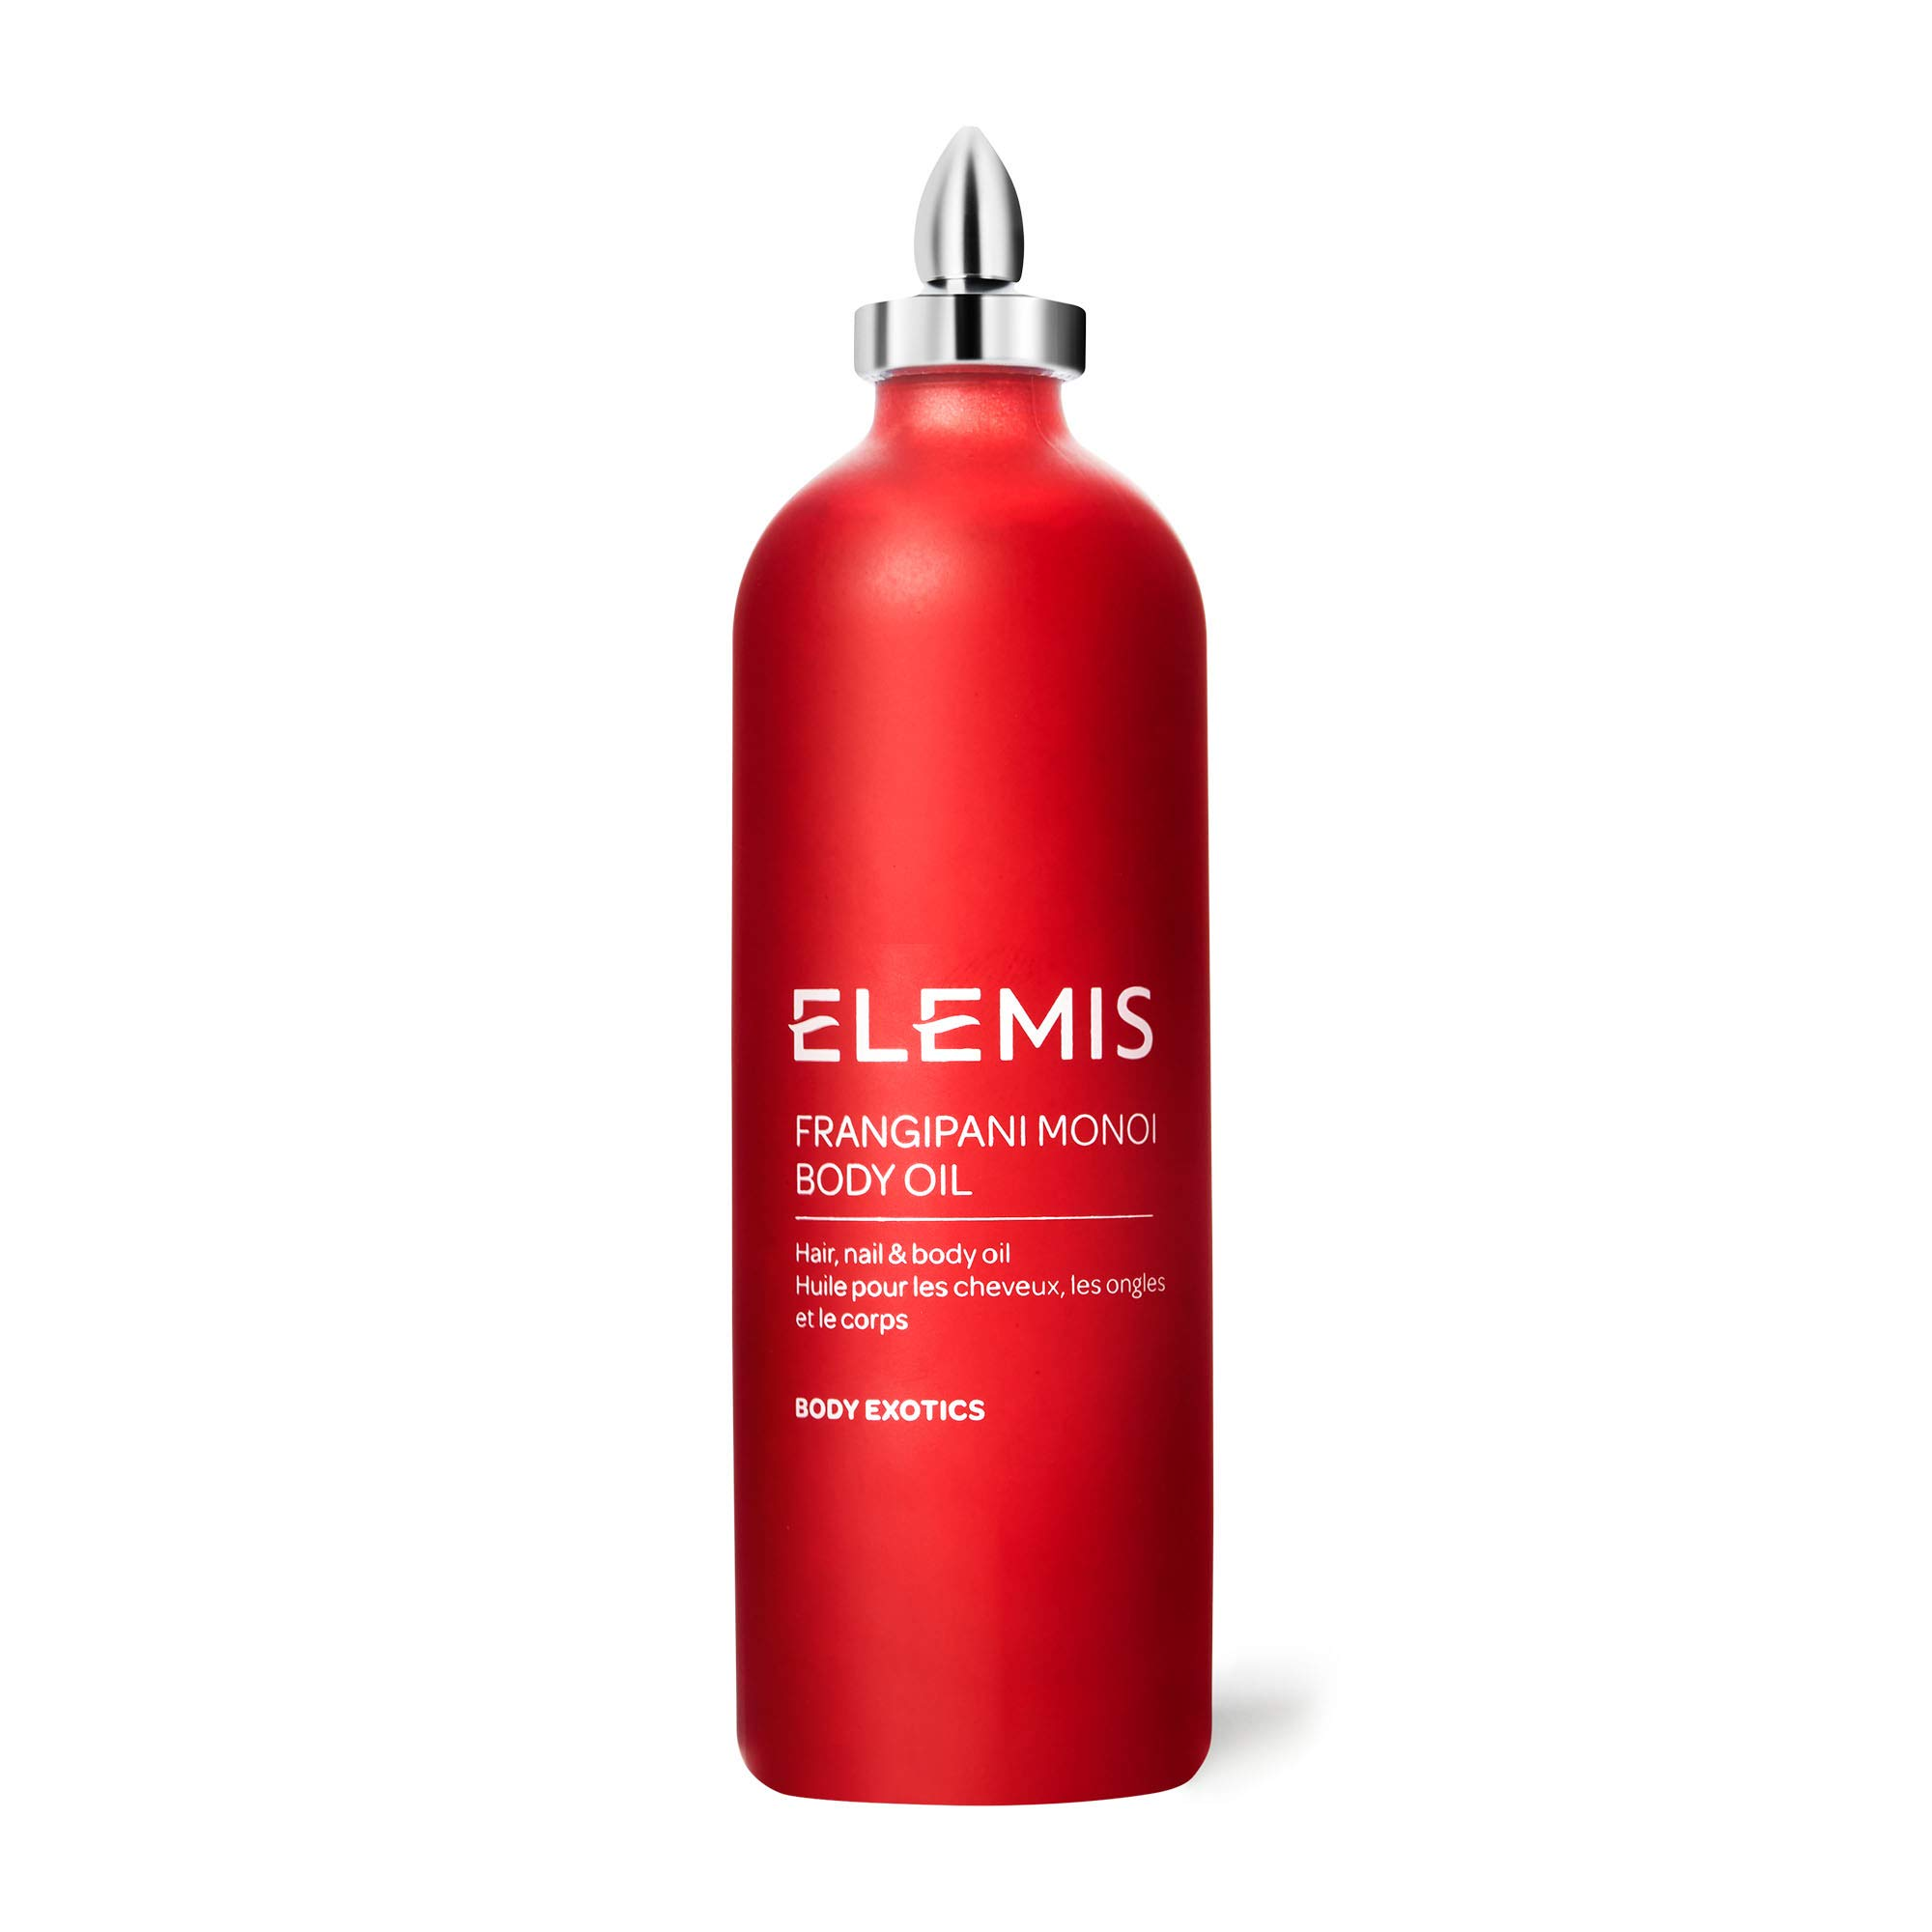 ELEMIS Frangipani Monoi Body Oil; Hair, Nail and Body Oil